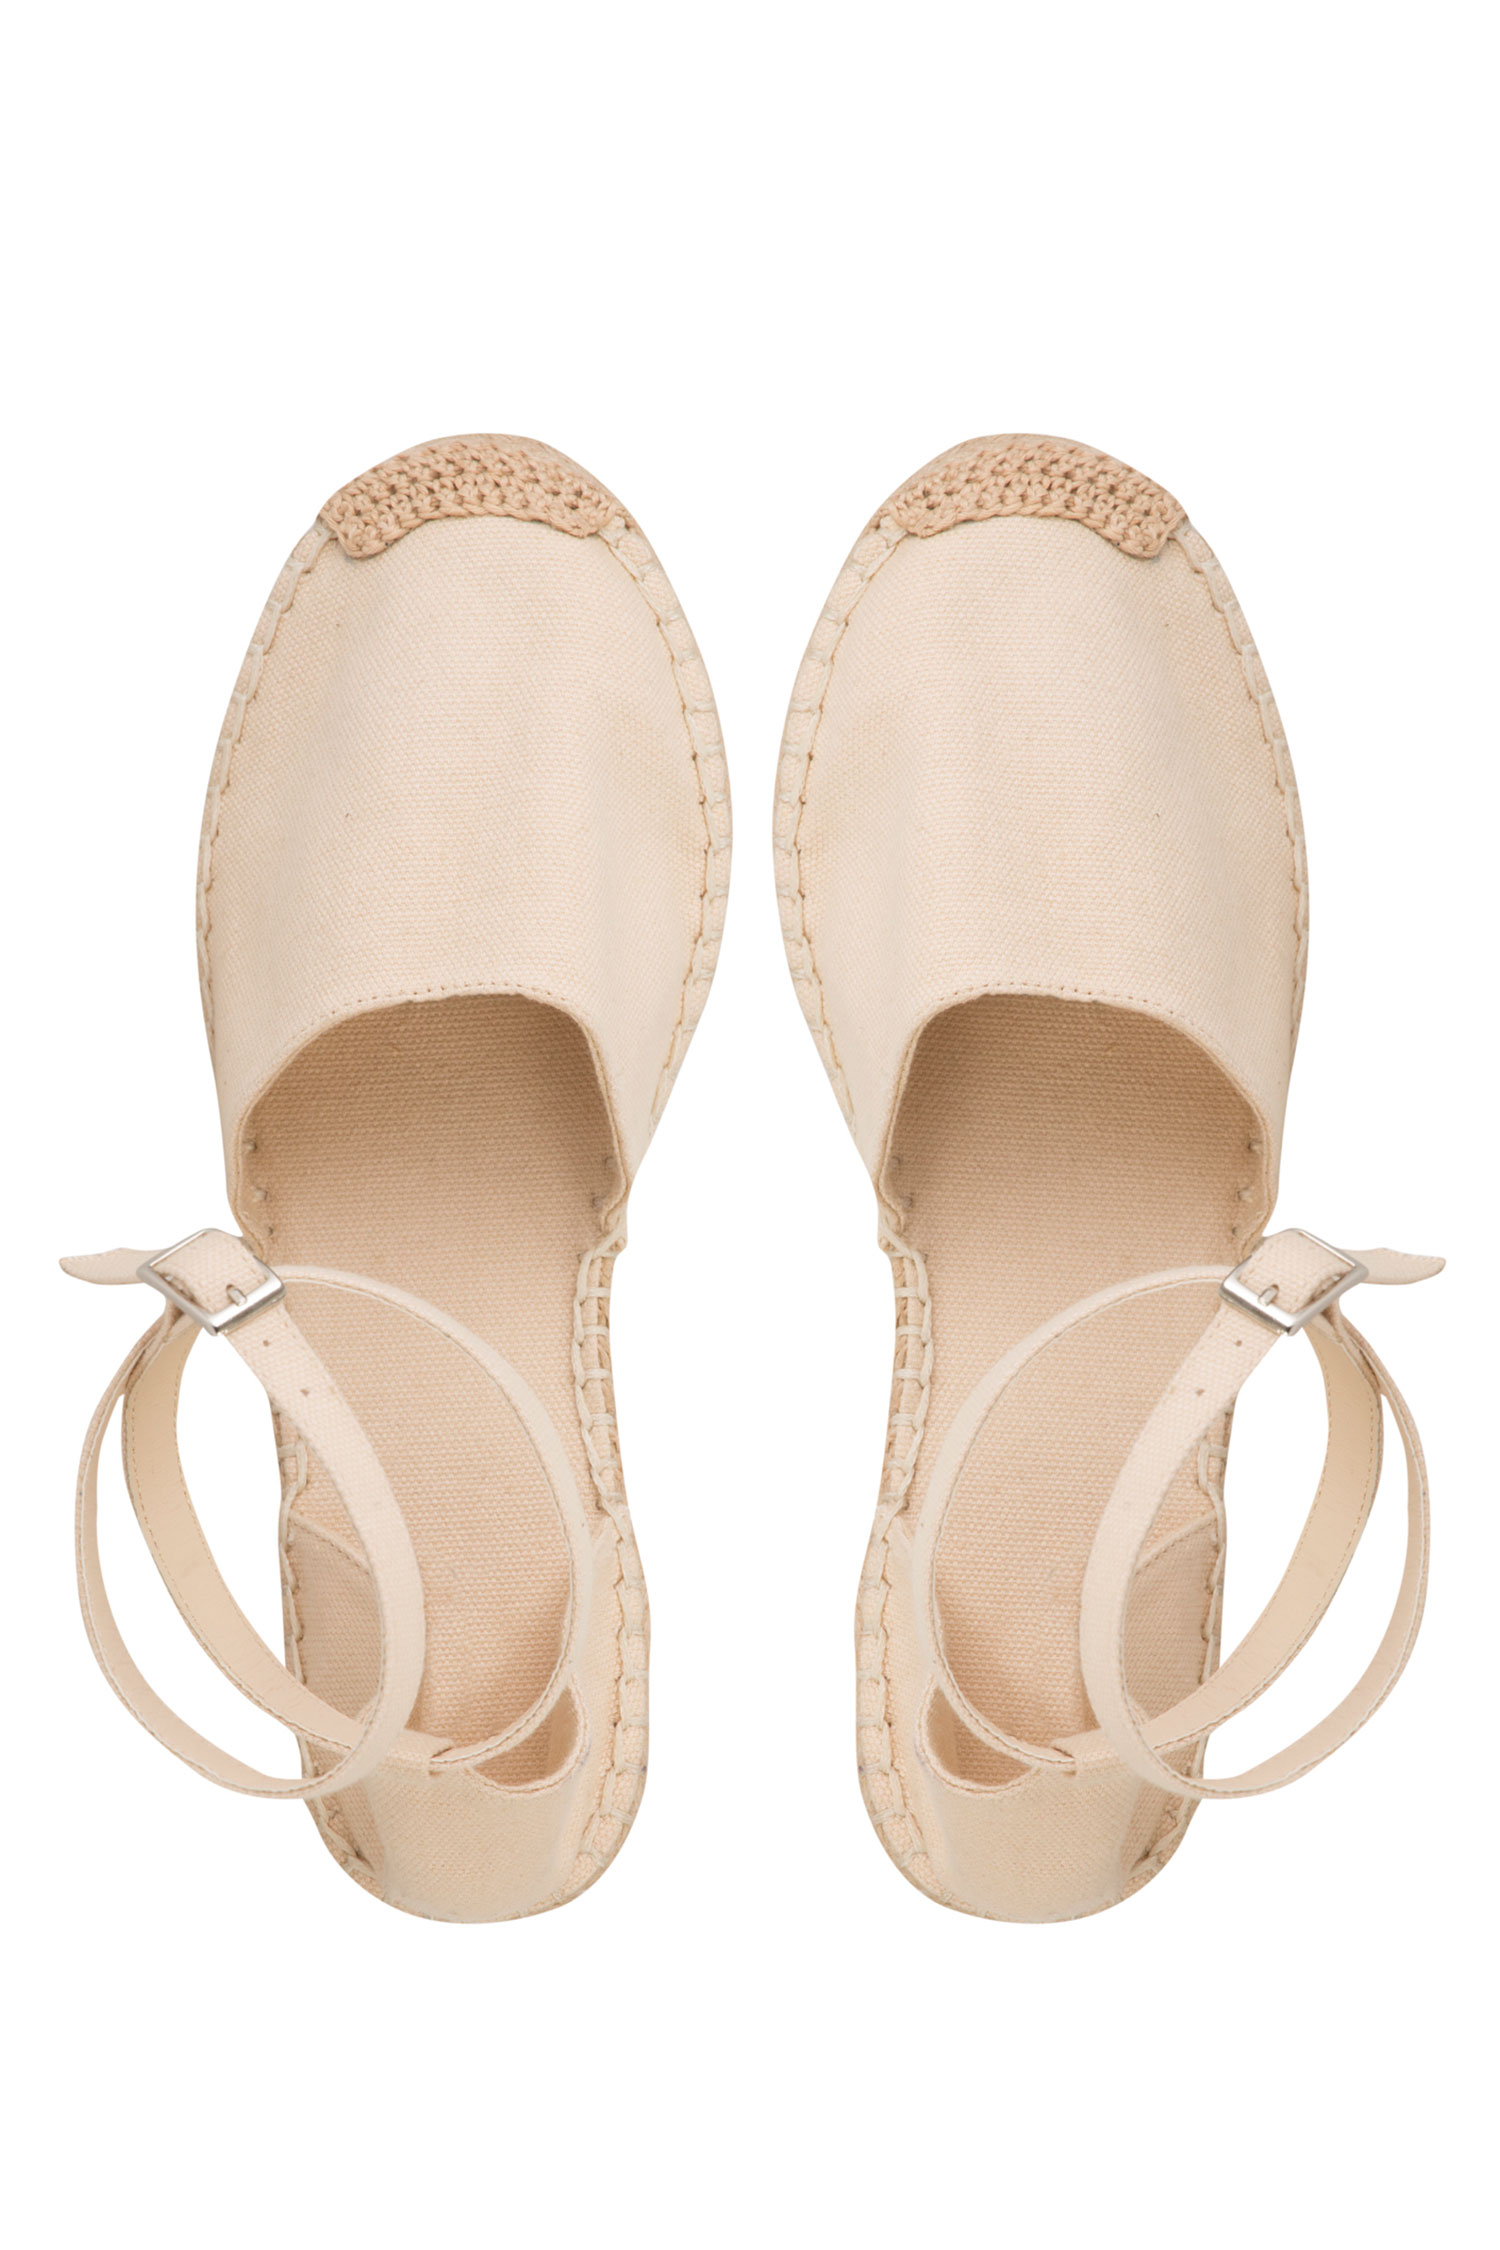 Sara Wide Fit Canvas Espadrille Style Number: 142260